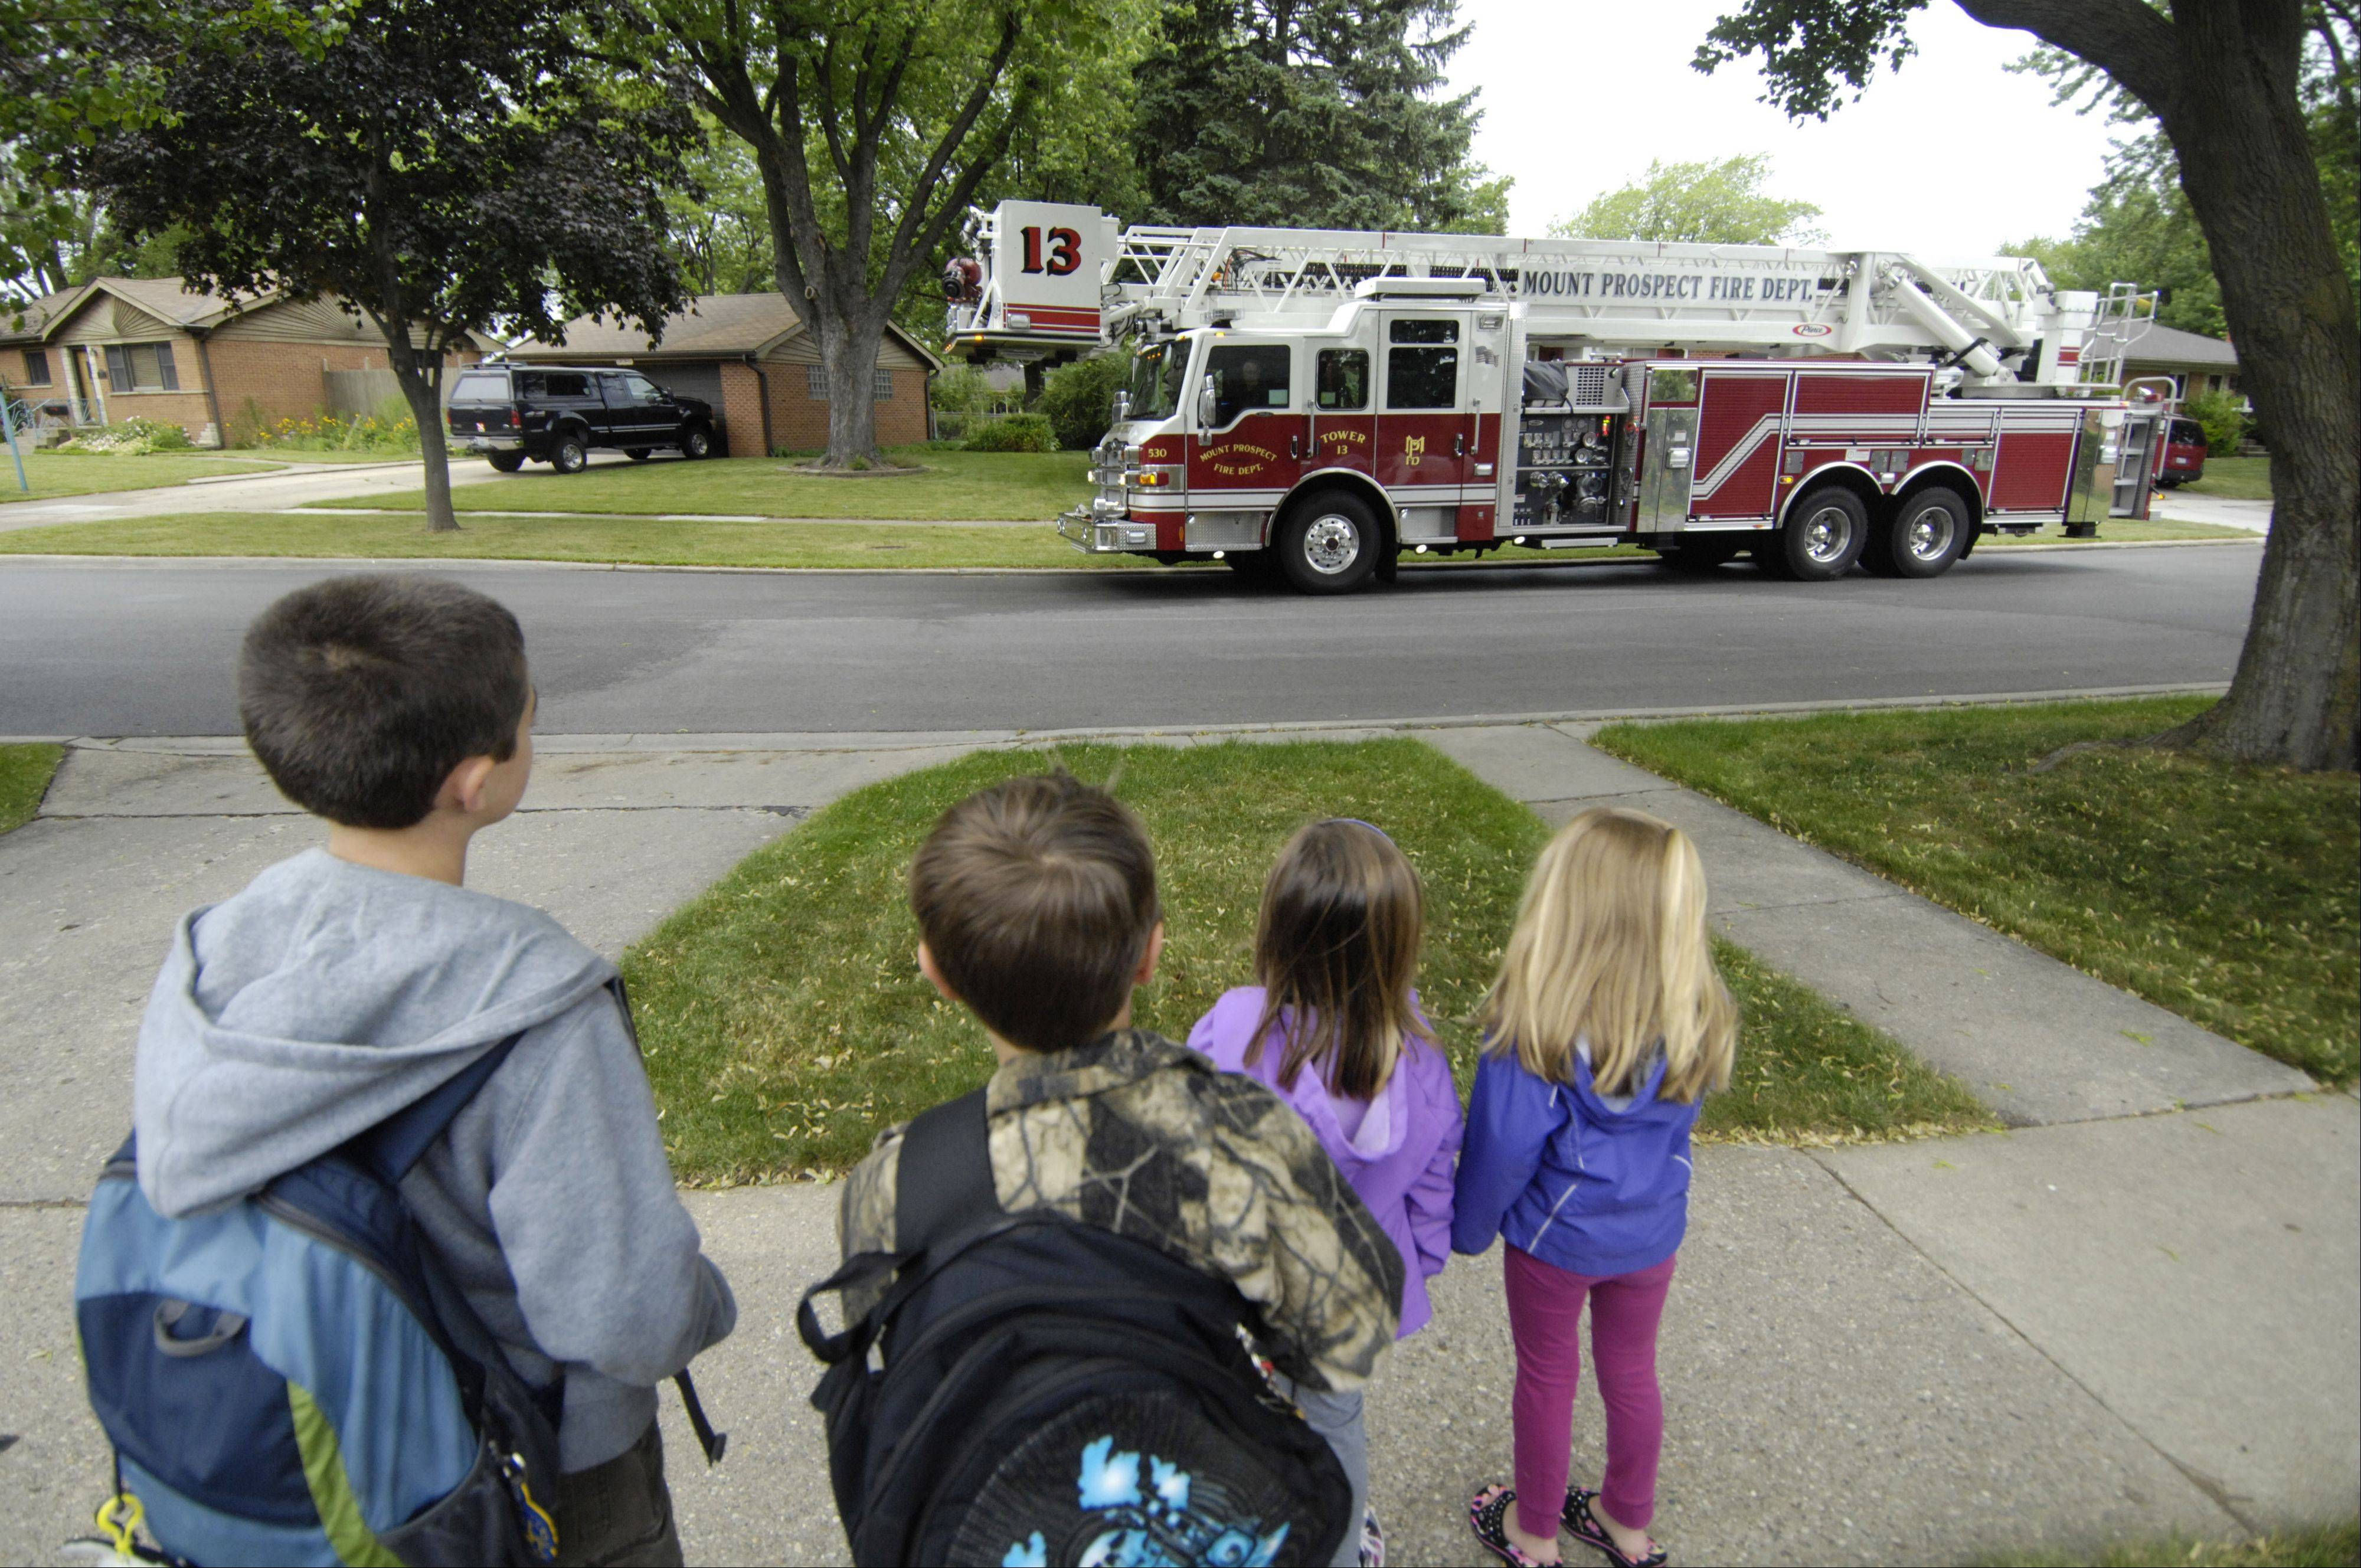 JOE LEWNARD/jlewnard@dailyherald.comSecond graders Carter Jedras, second from left, and his friend Bryce Tuchner, as well as their siblings Olivia Jedras, 4, and Mia Tuchner, 5, right, watch as a fire truck arrives to take the boys to Fairview Elementary School in Mount Prospect Thursday.